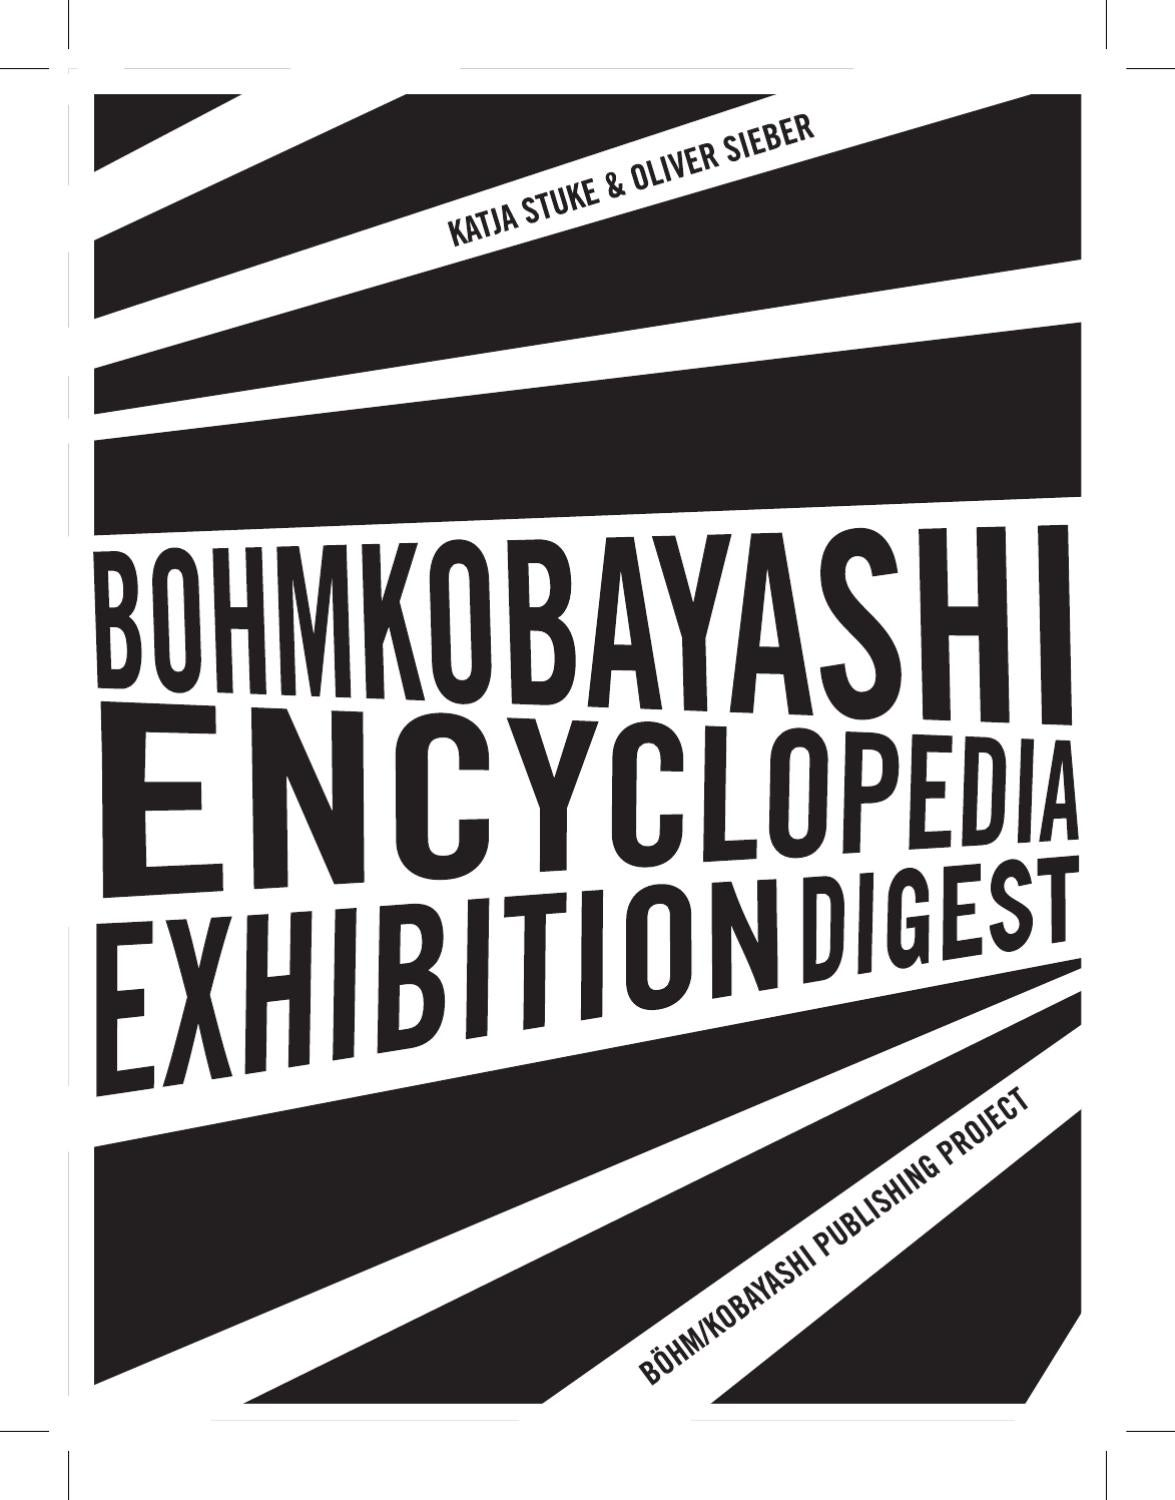 Böhm Kobayashi Encyclopedia Exhibition Digest By Böhm Kobayashi Issuu